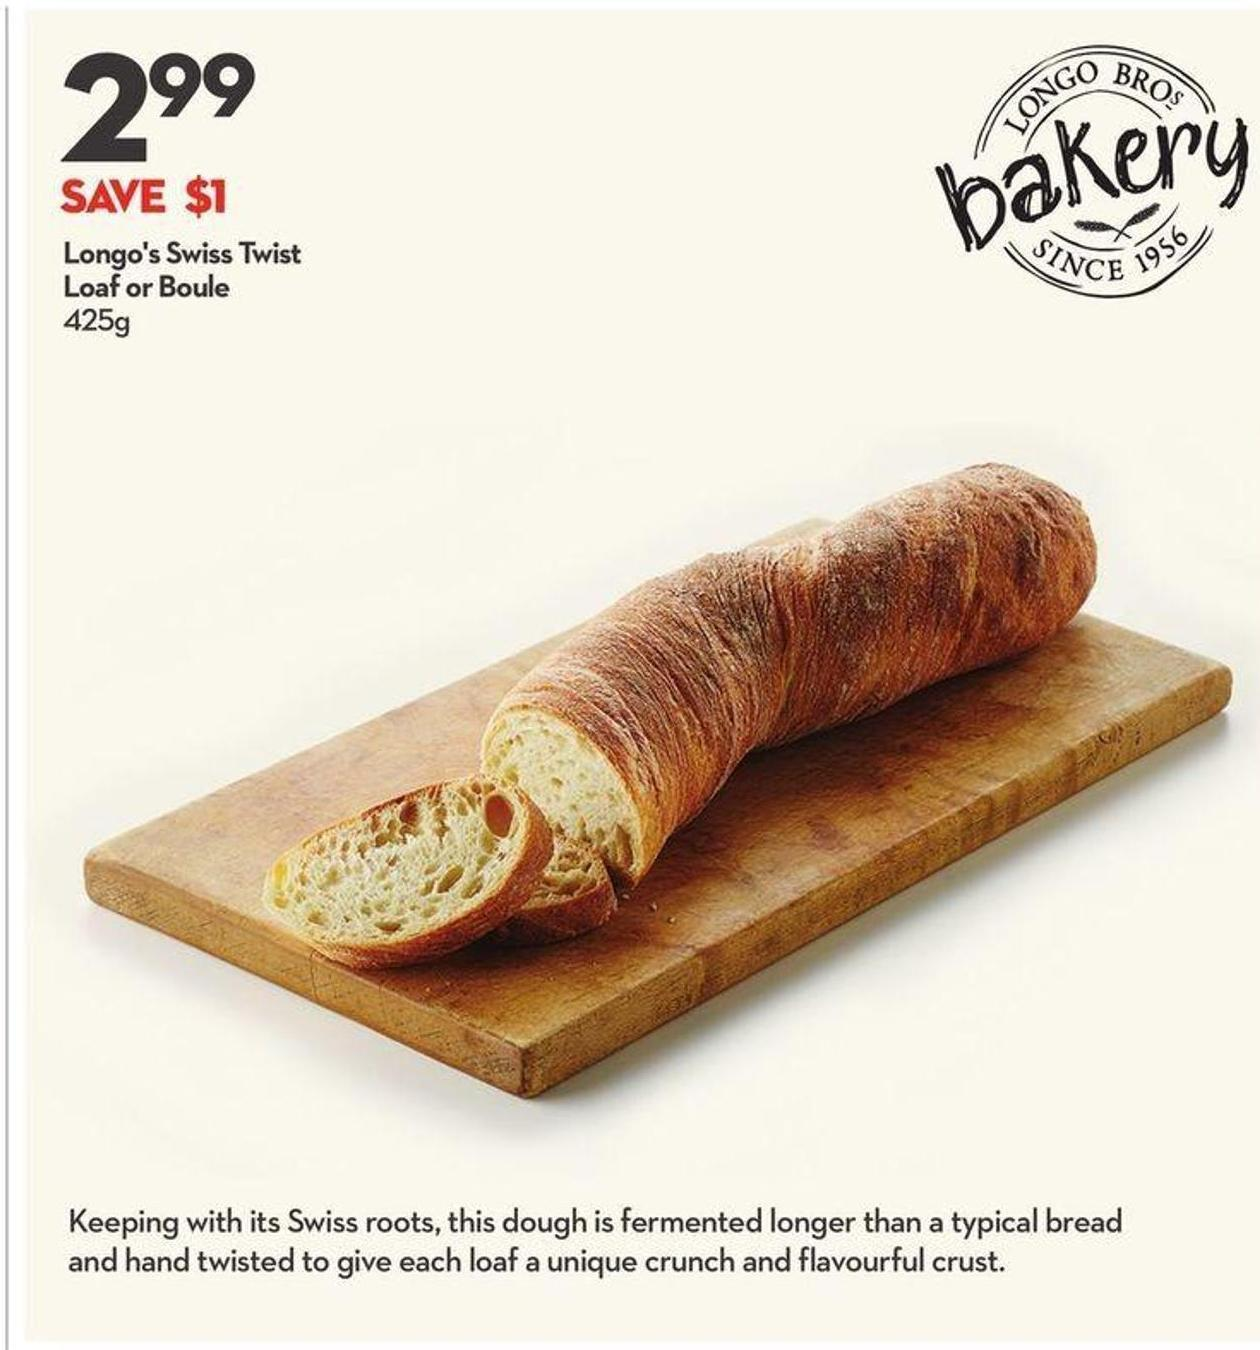 Longo's Swiss Twist Loaf or Boule